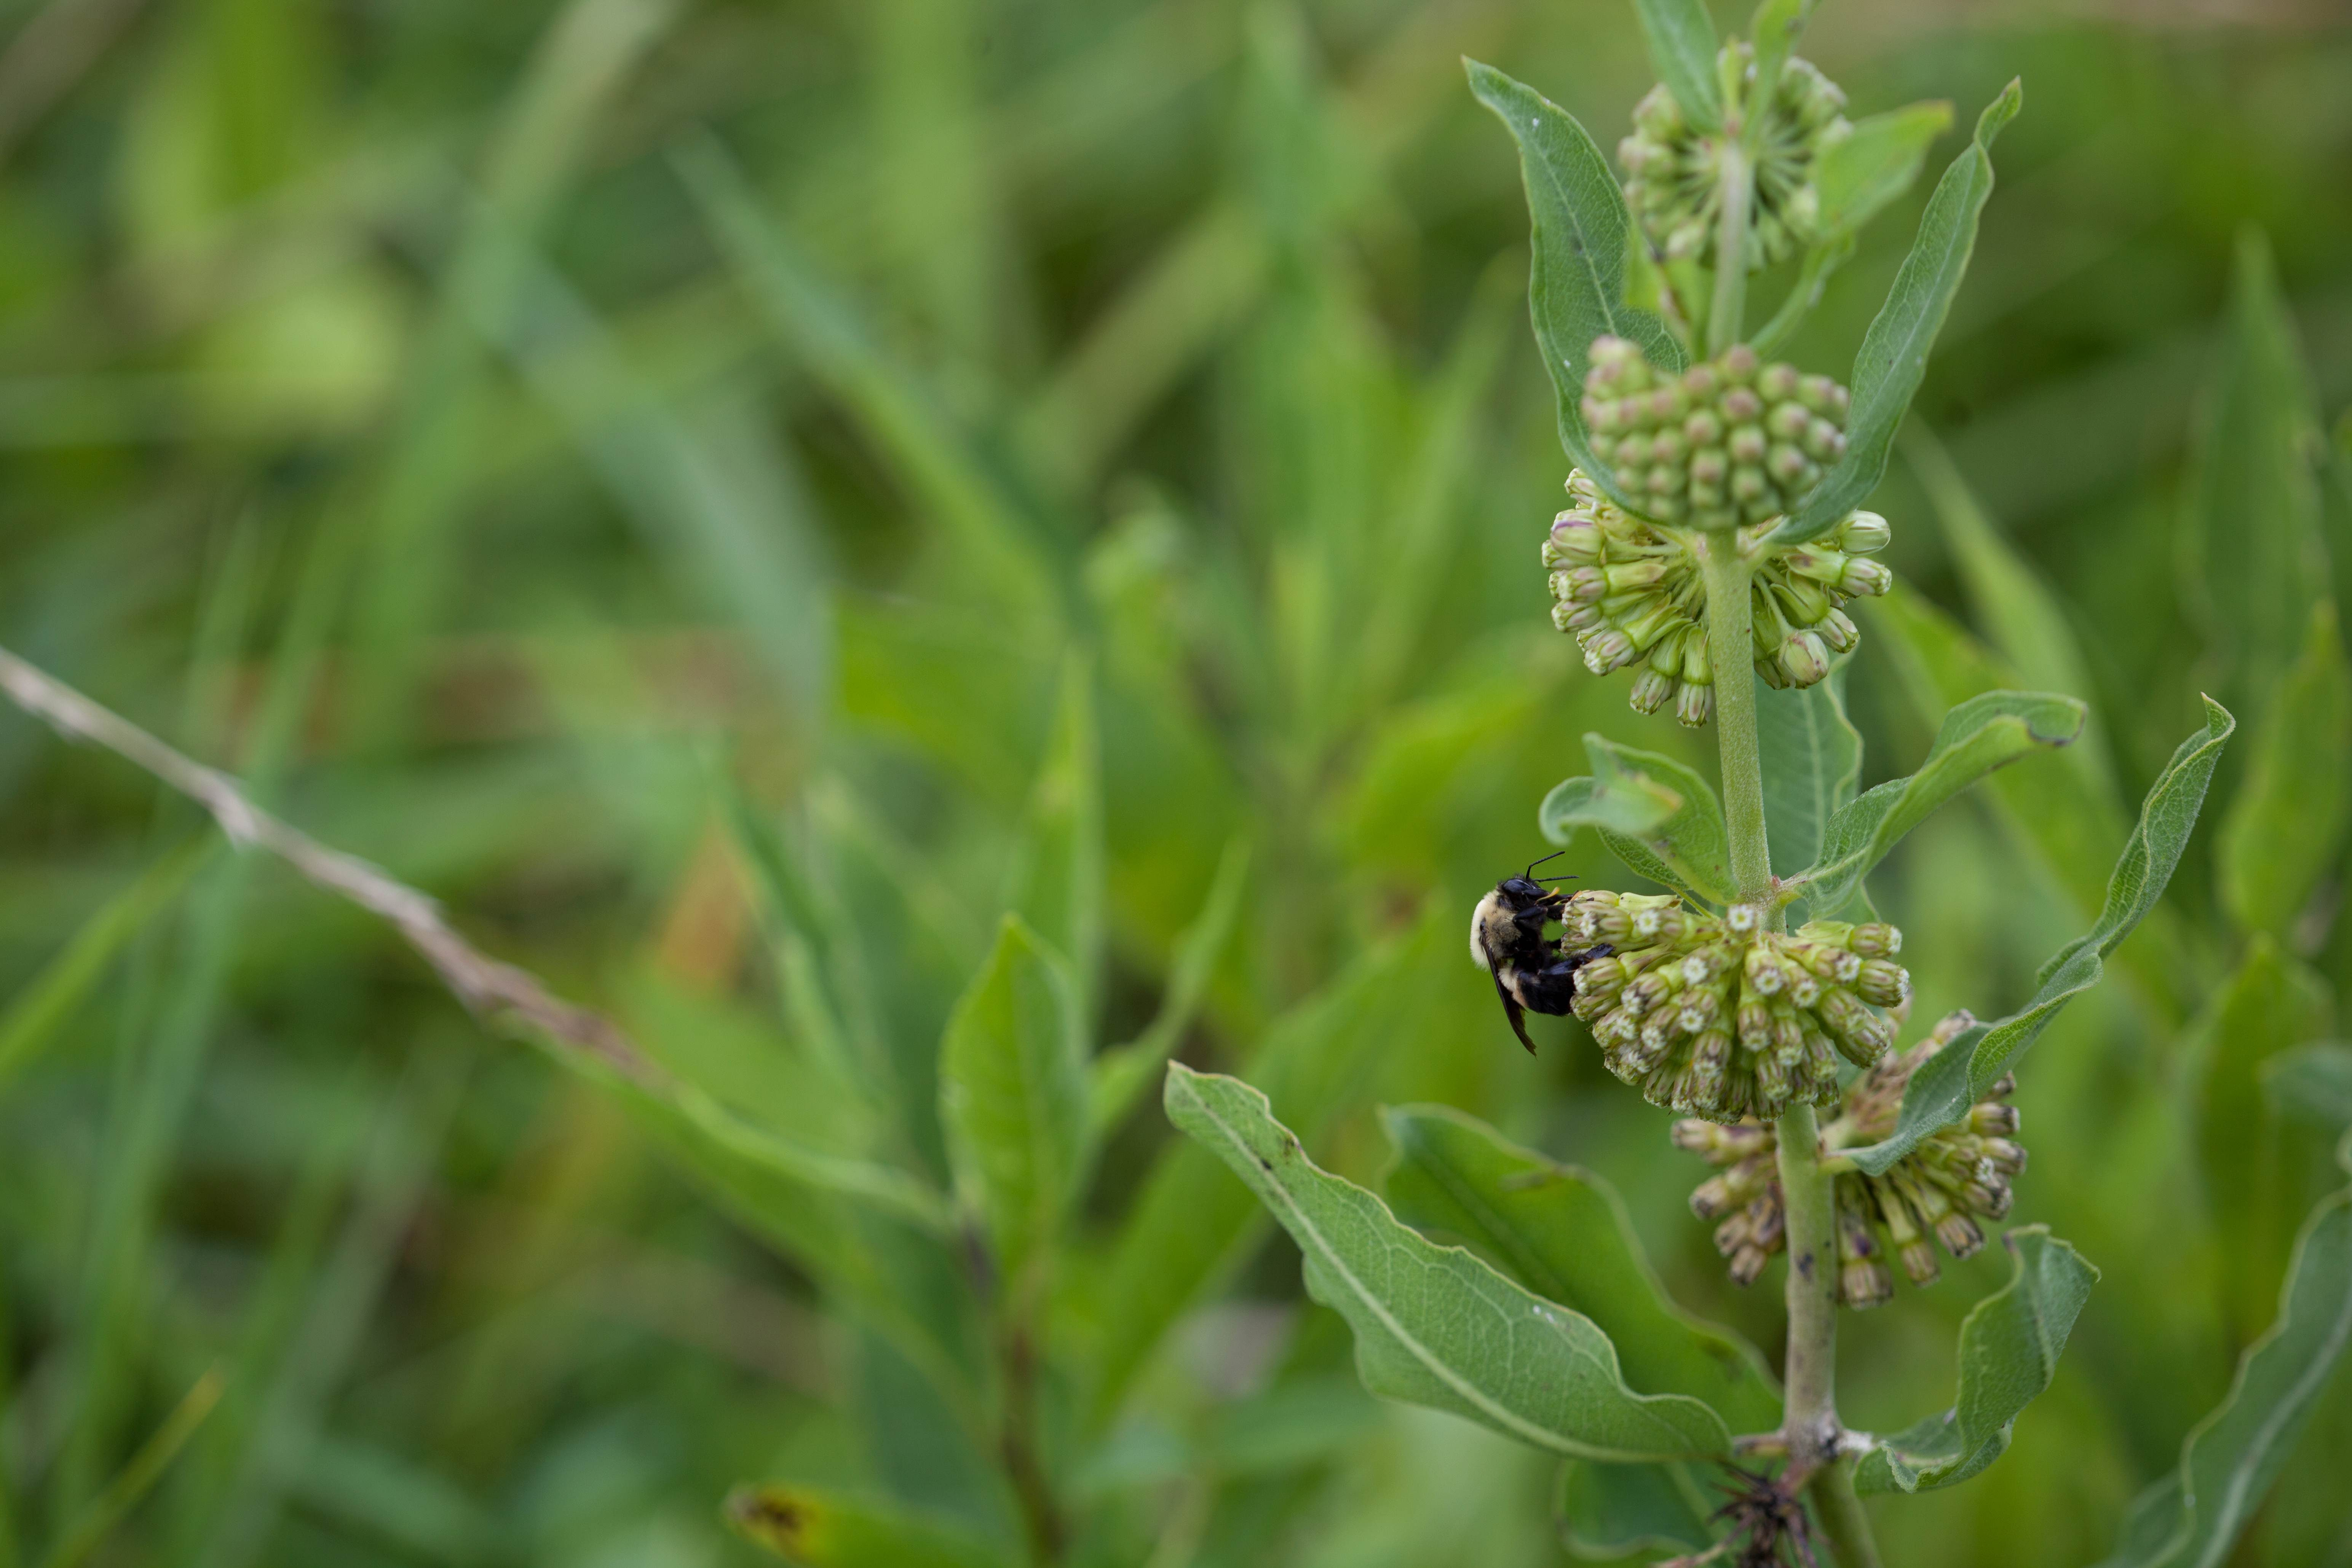 Free photograph; green, comet, mIlkweed, bee, insect